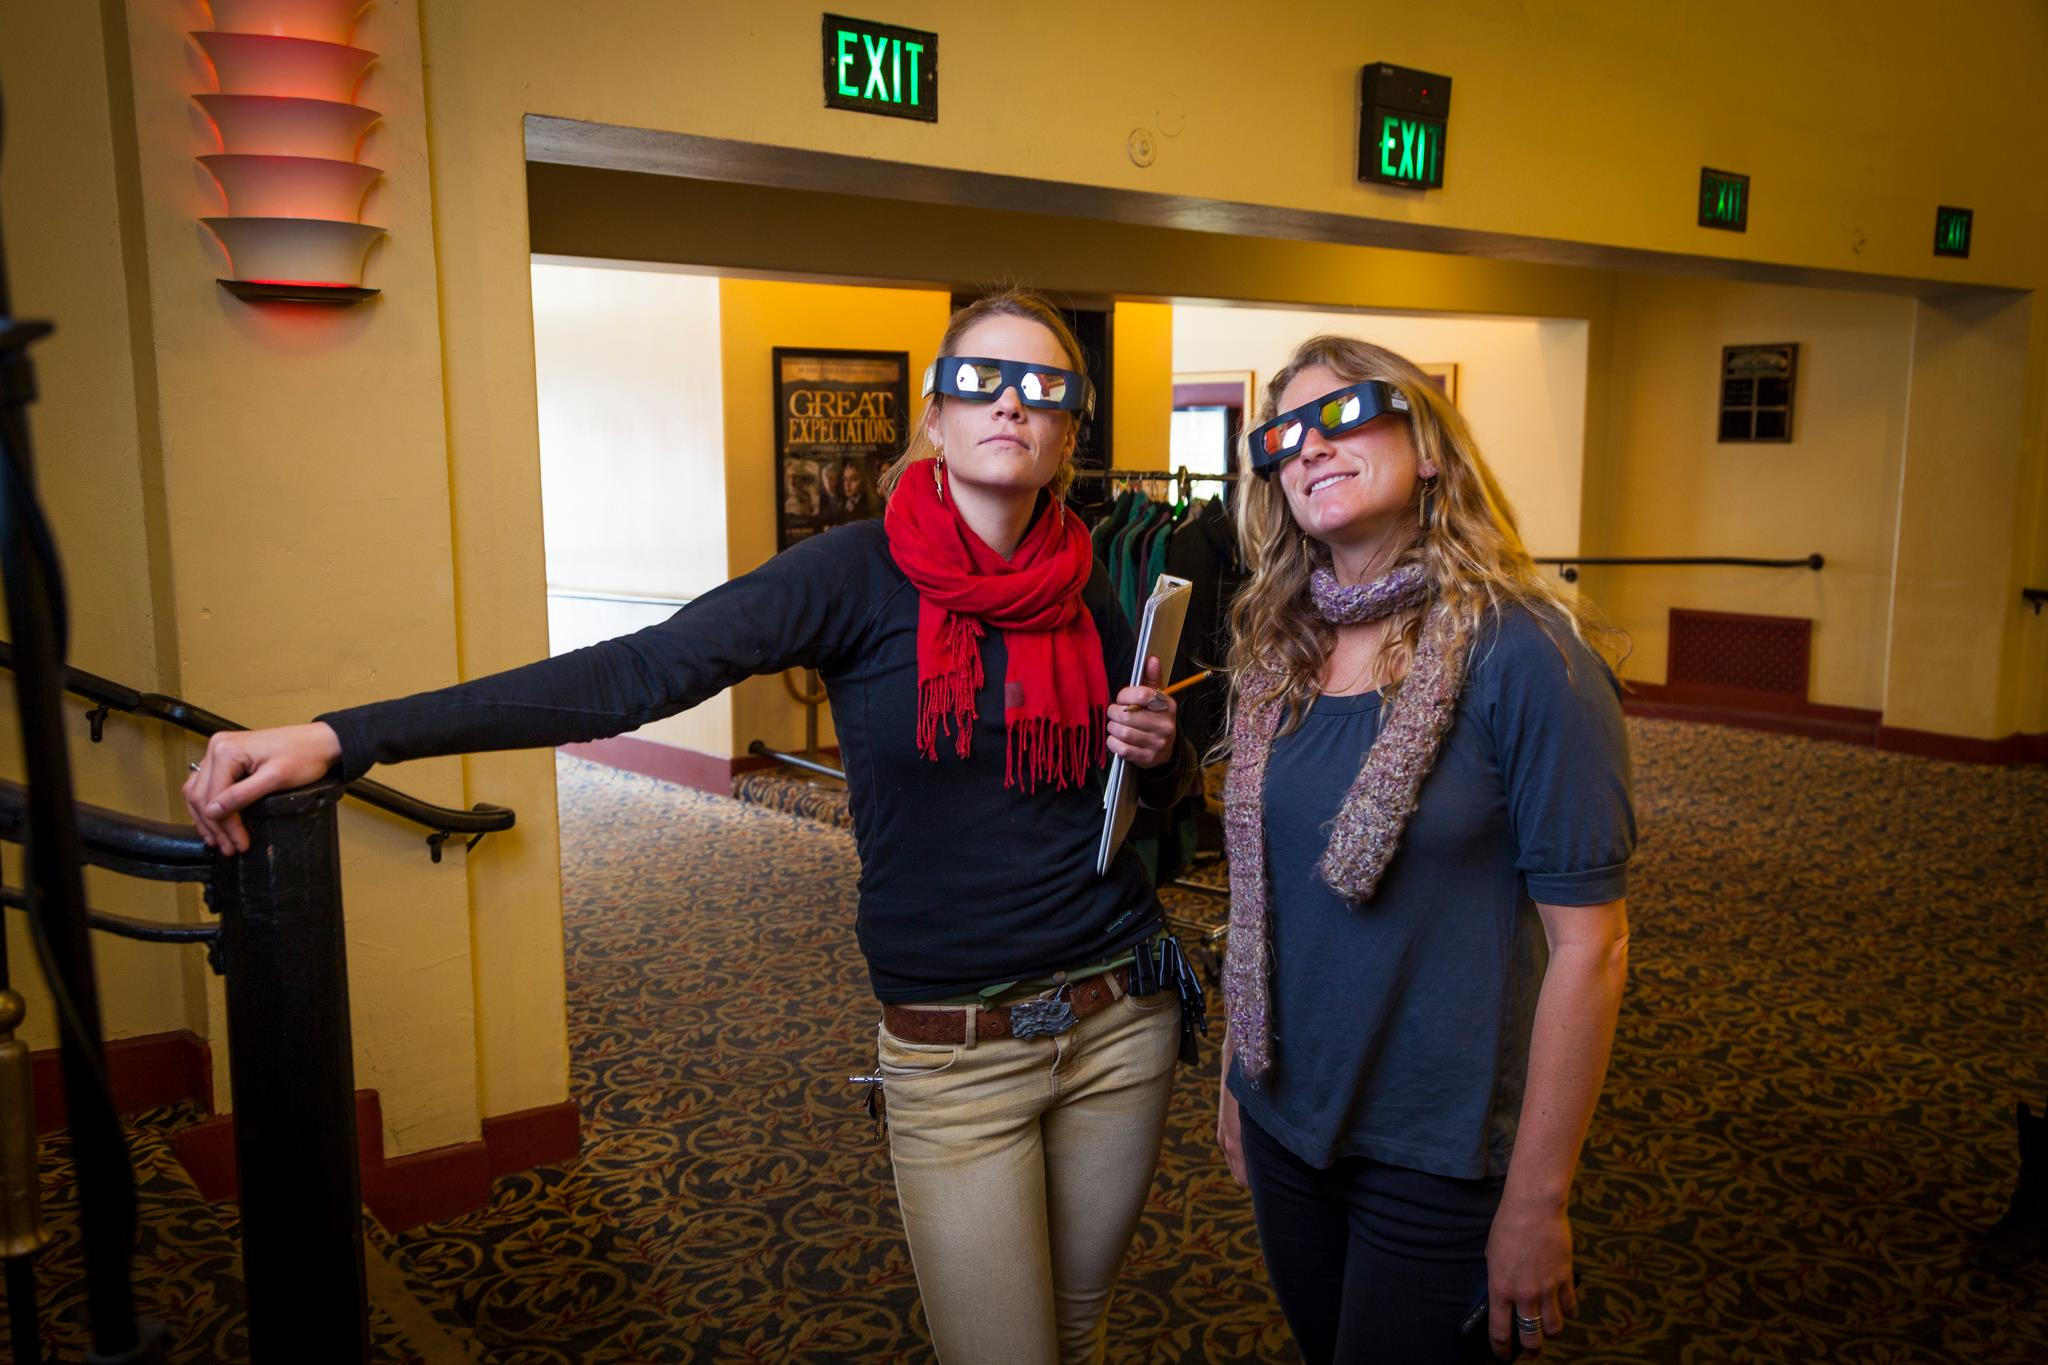 Here, our production assistants Gina and Cat have some fun with the 3D glasses at the theater we shot in.